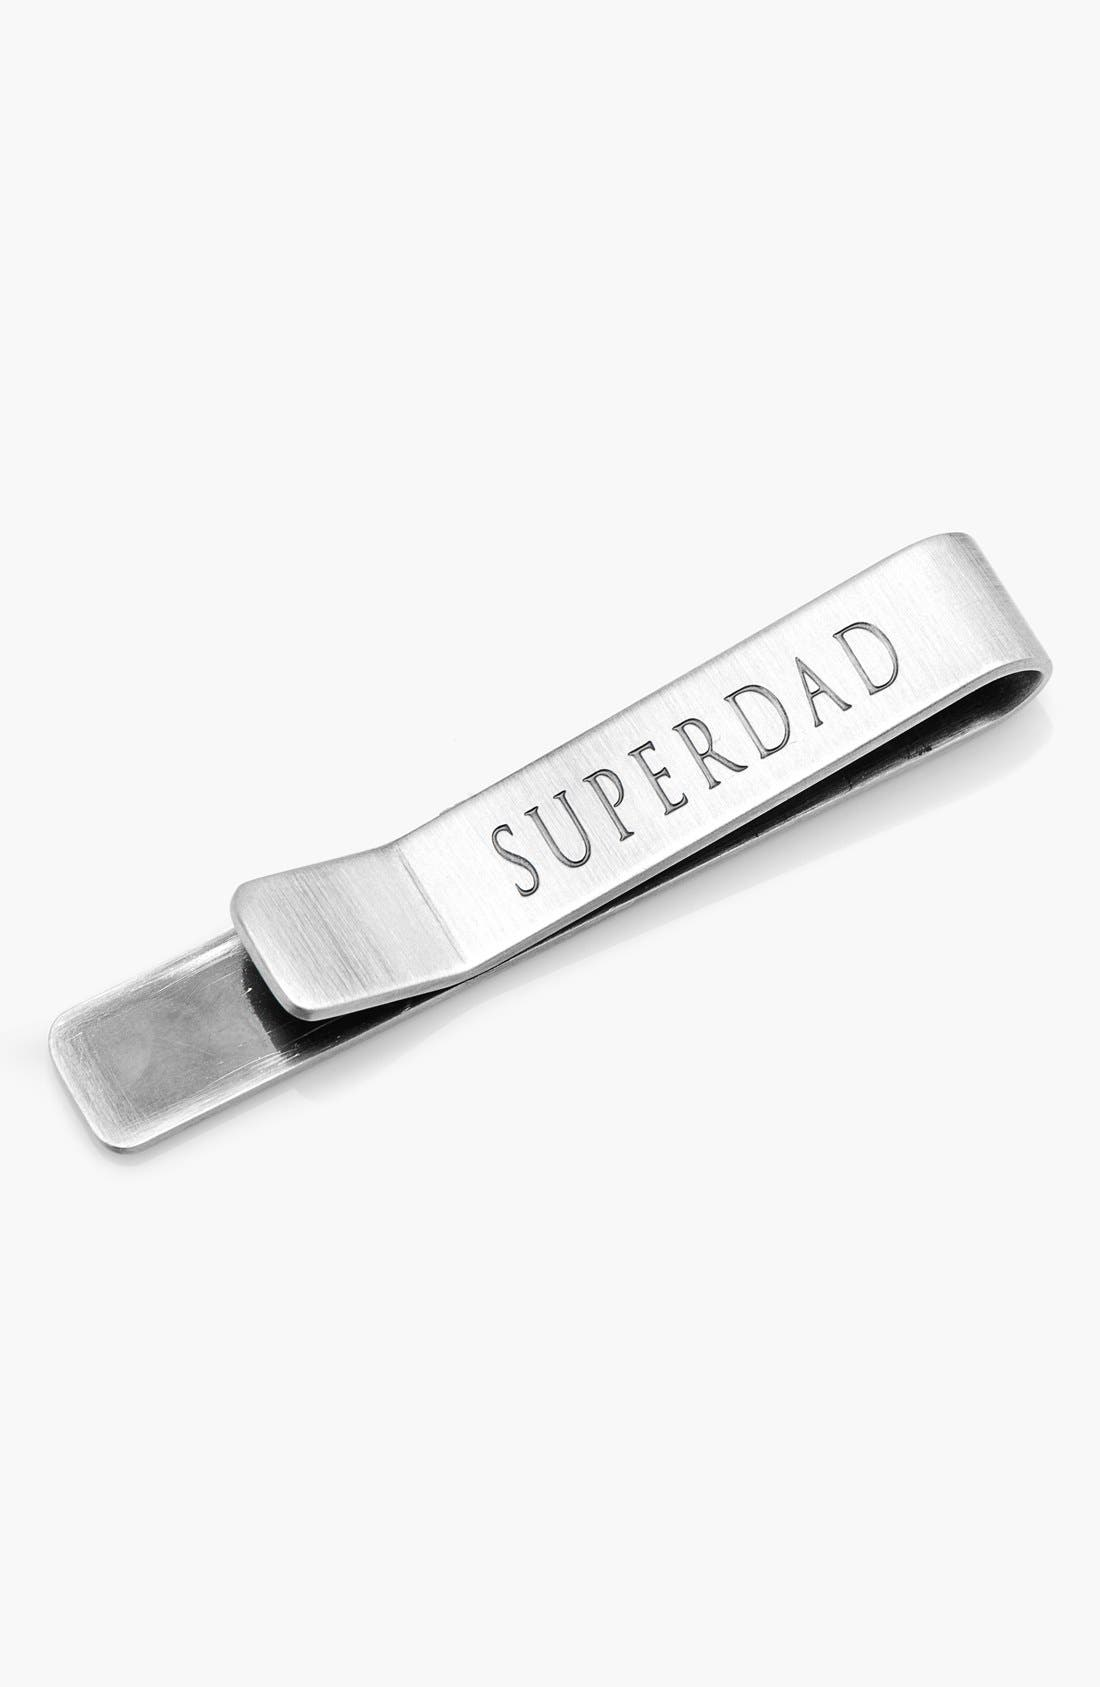 Main Image - Ox and Bull Trading Co. 'Superdad' Tie Bar